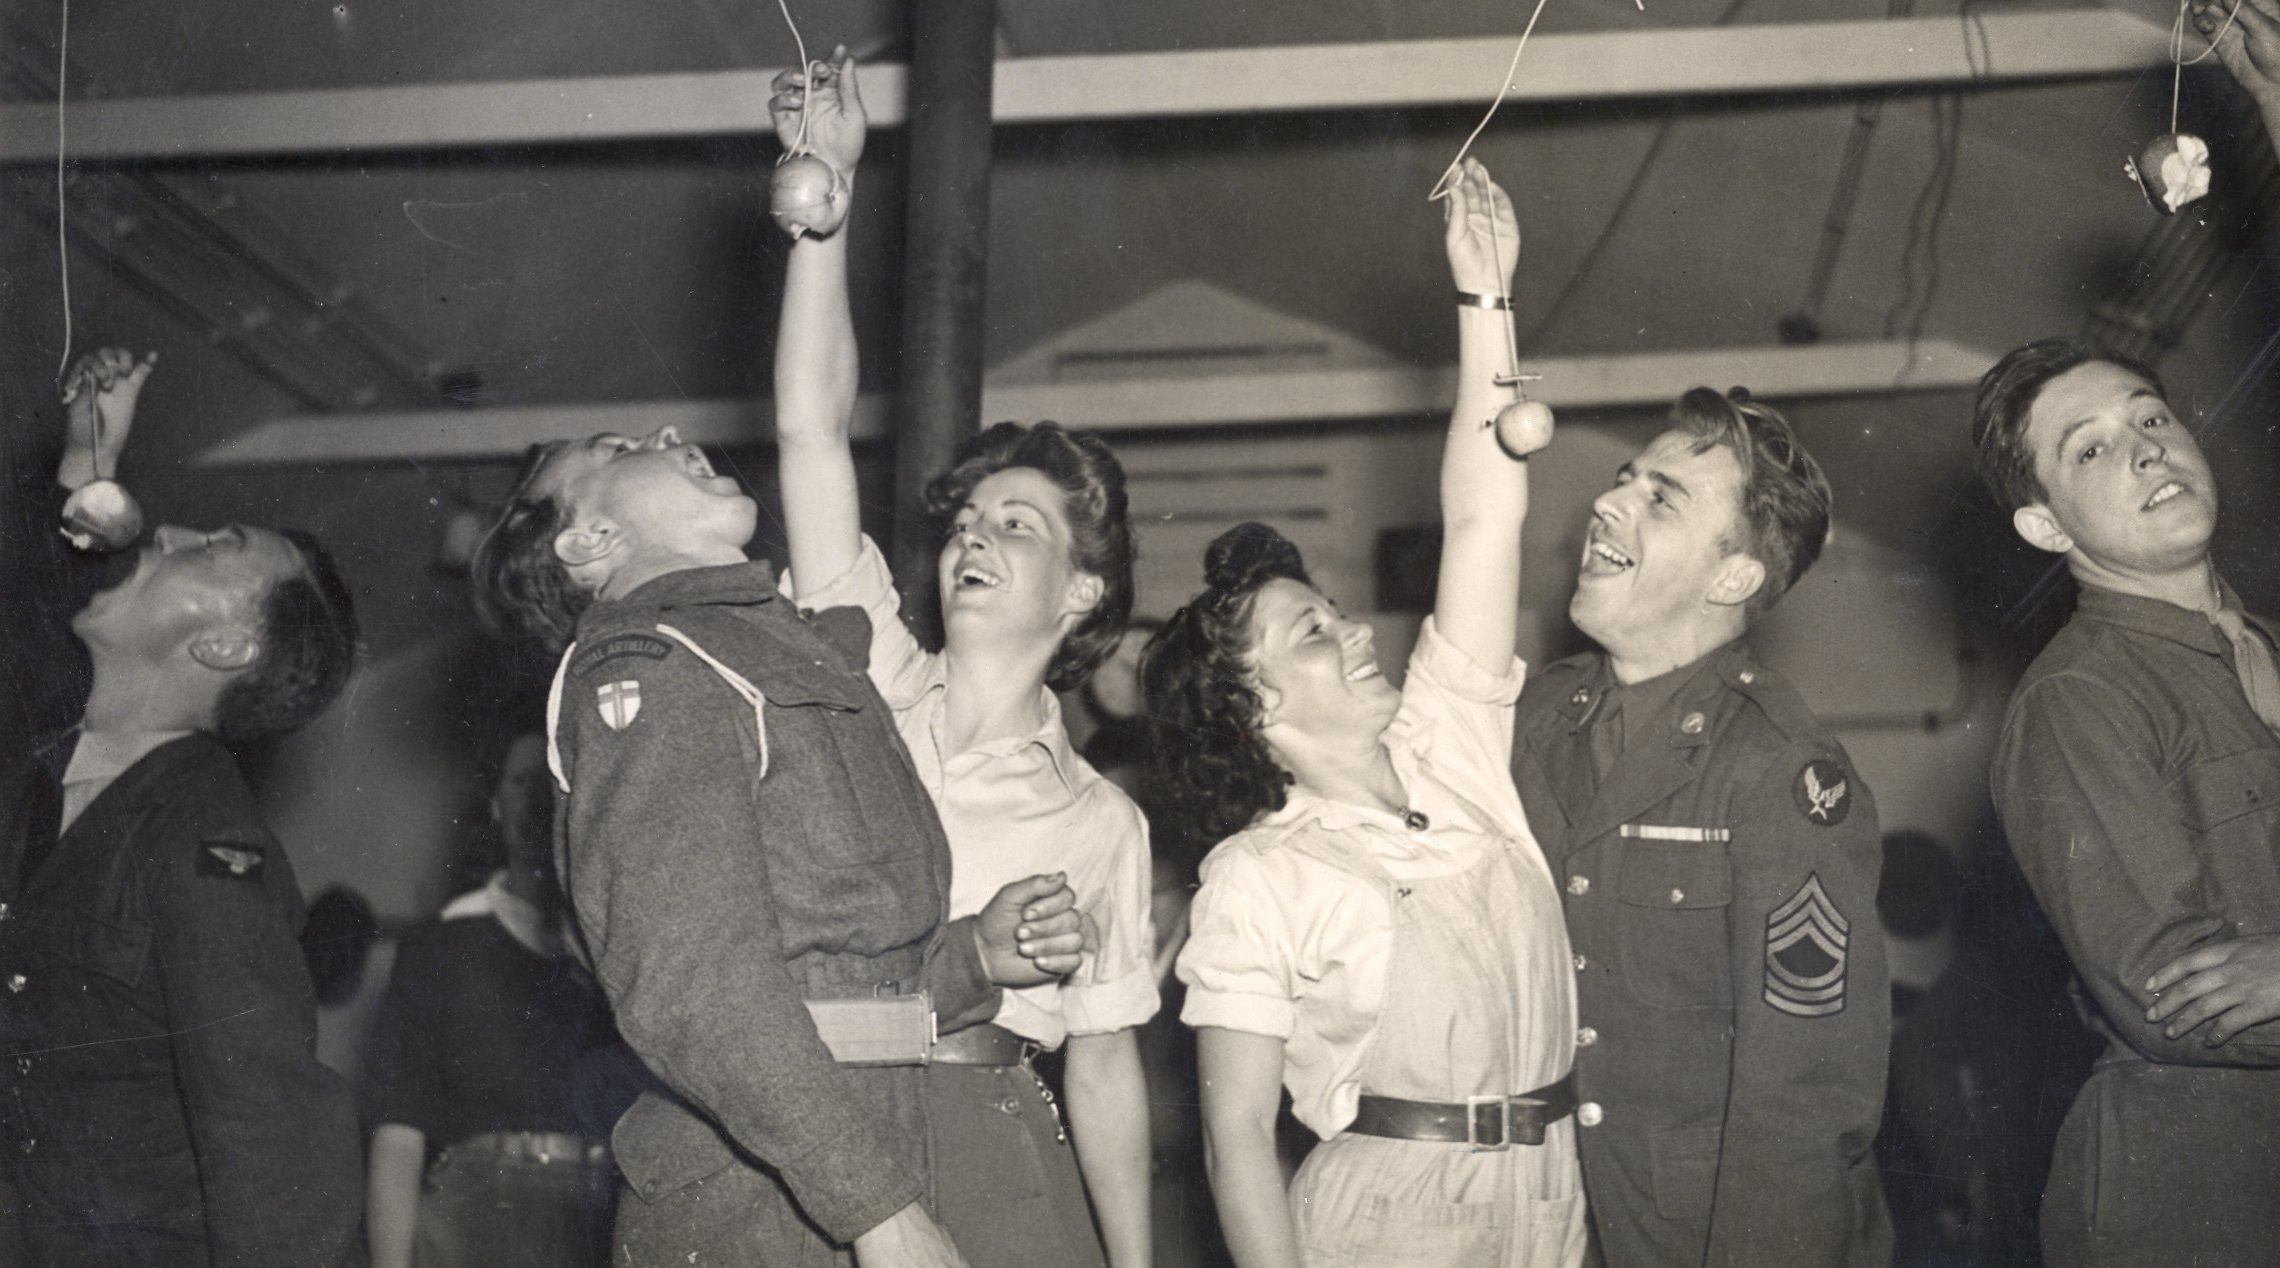 Caption: Ann Brodrick (left) with British serviceman and Mary Codrington with an American serviceman at a Halloween party c.1943 in Milton Ernest WLA hutment hostel, Bedfordshire.